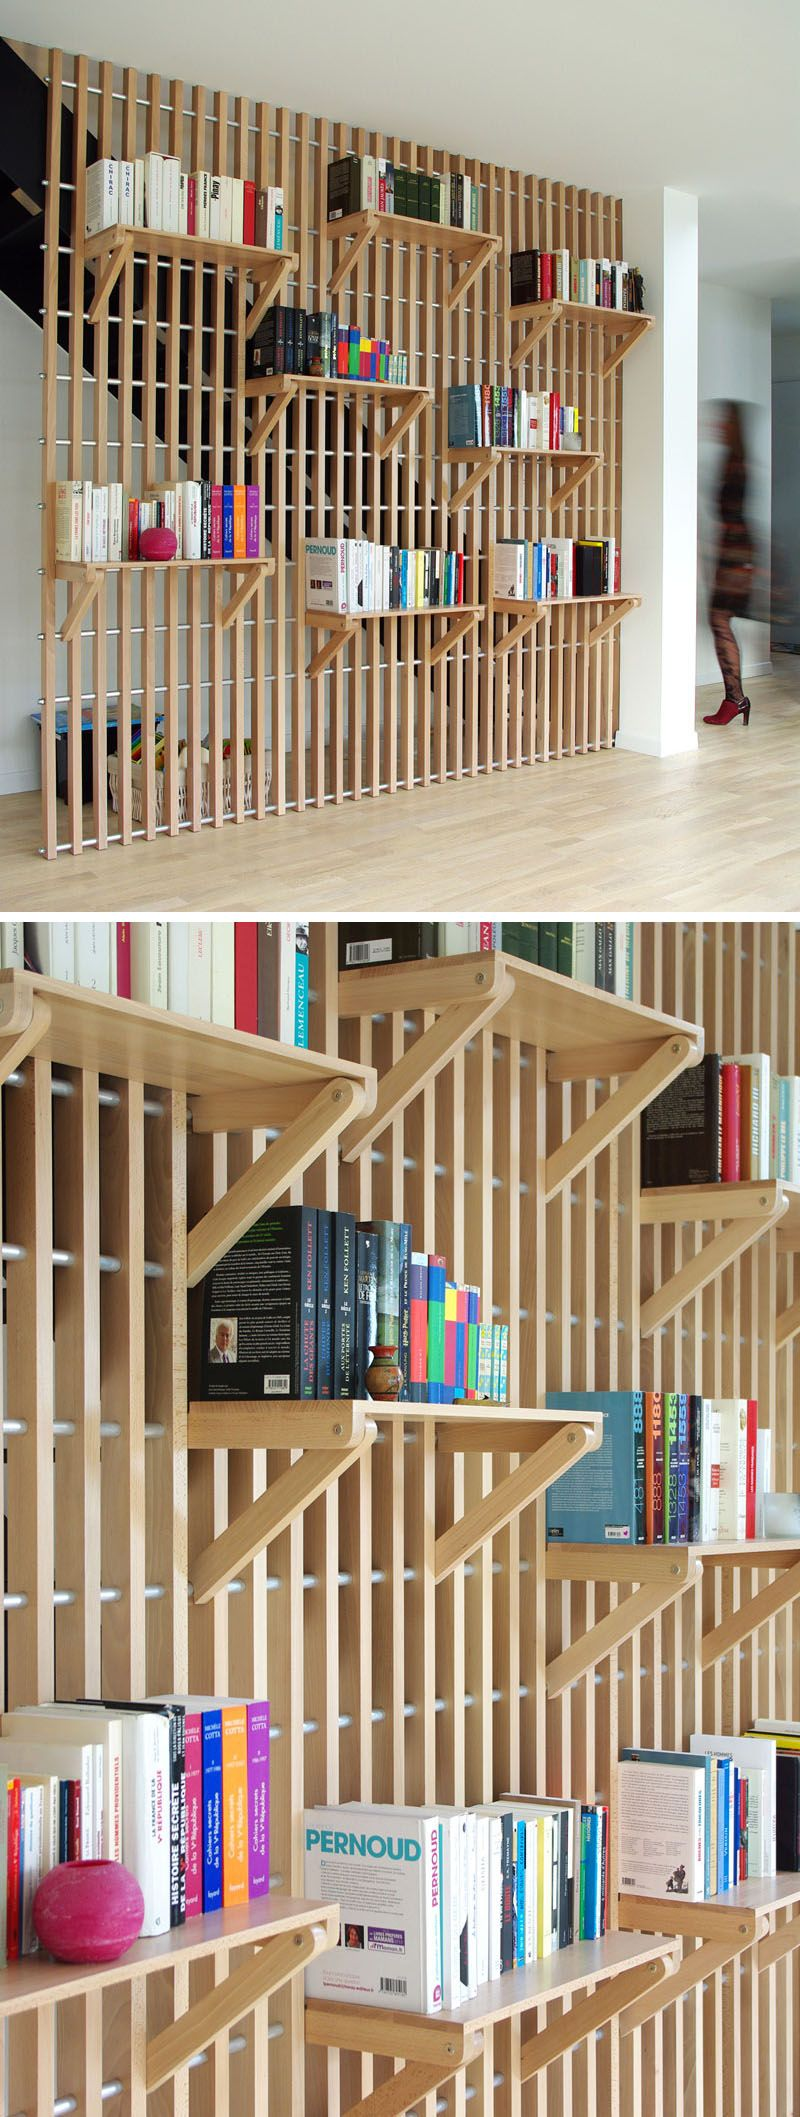 French designer Alexandre Pain created Rossignol, a custom designed wood shelf and railing system that can be u